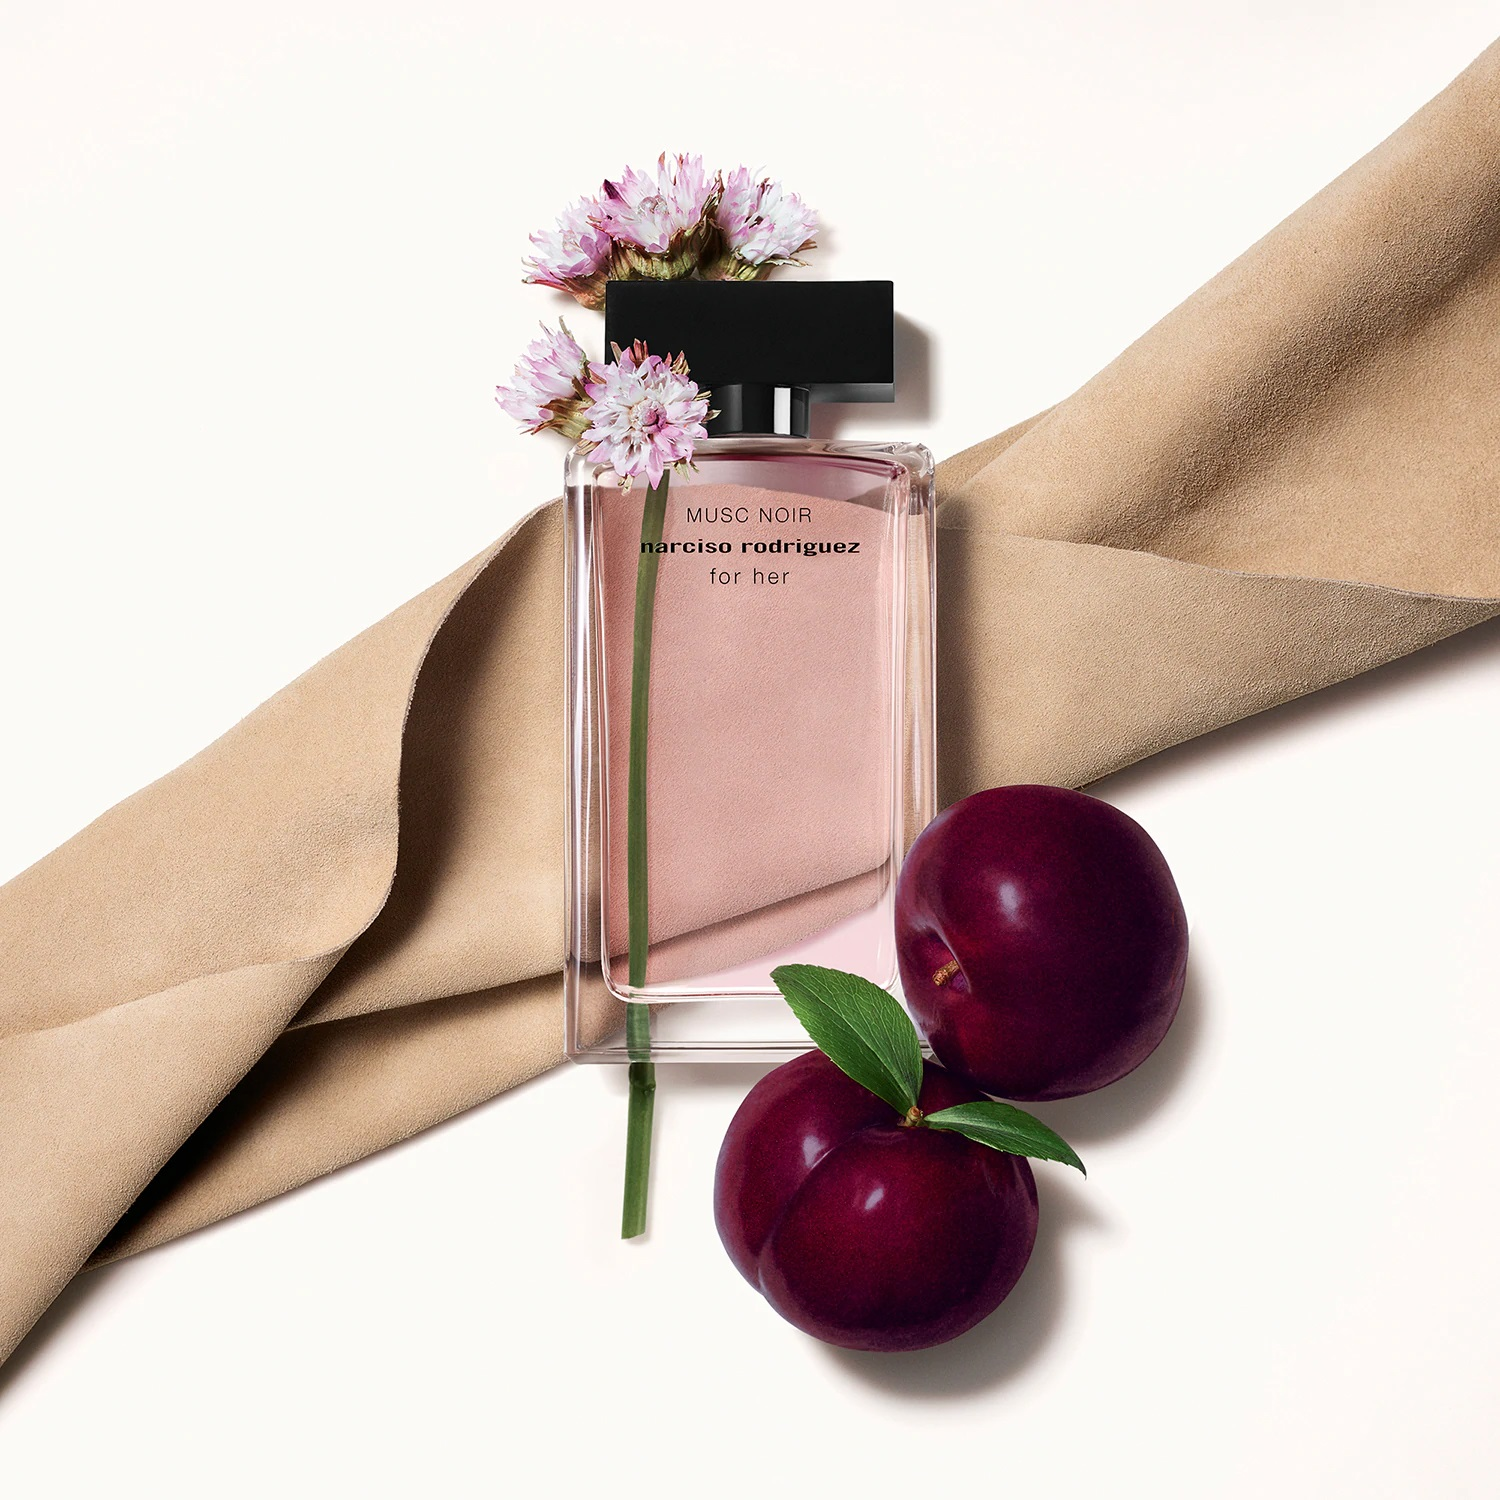 Narciso Rodriguez for Her Musc Noir opinie